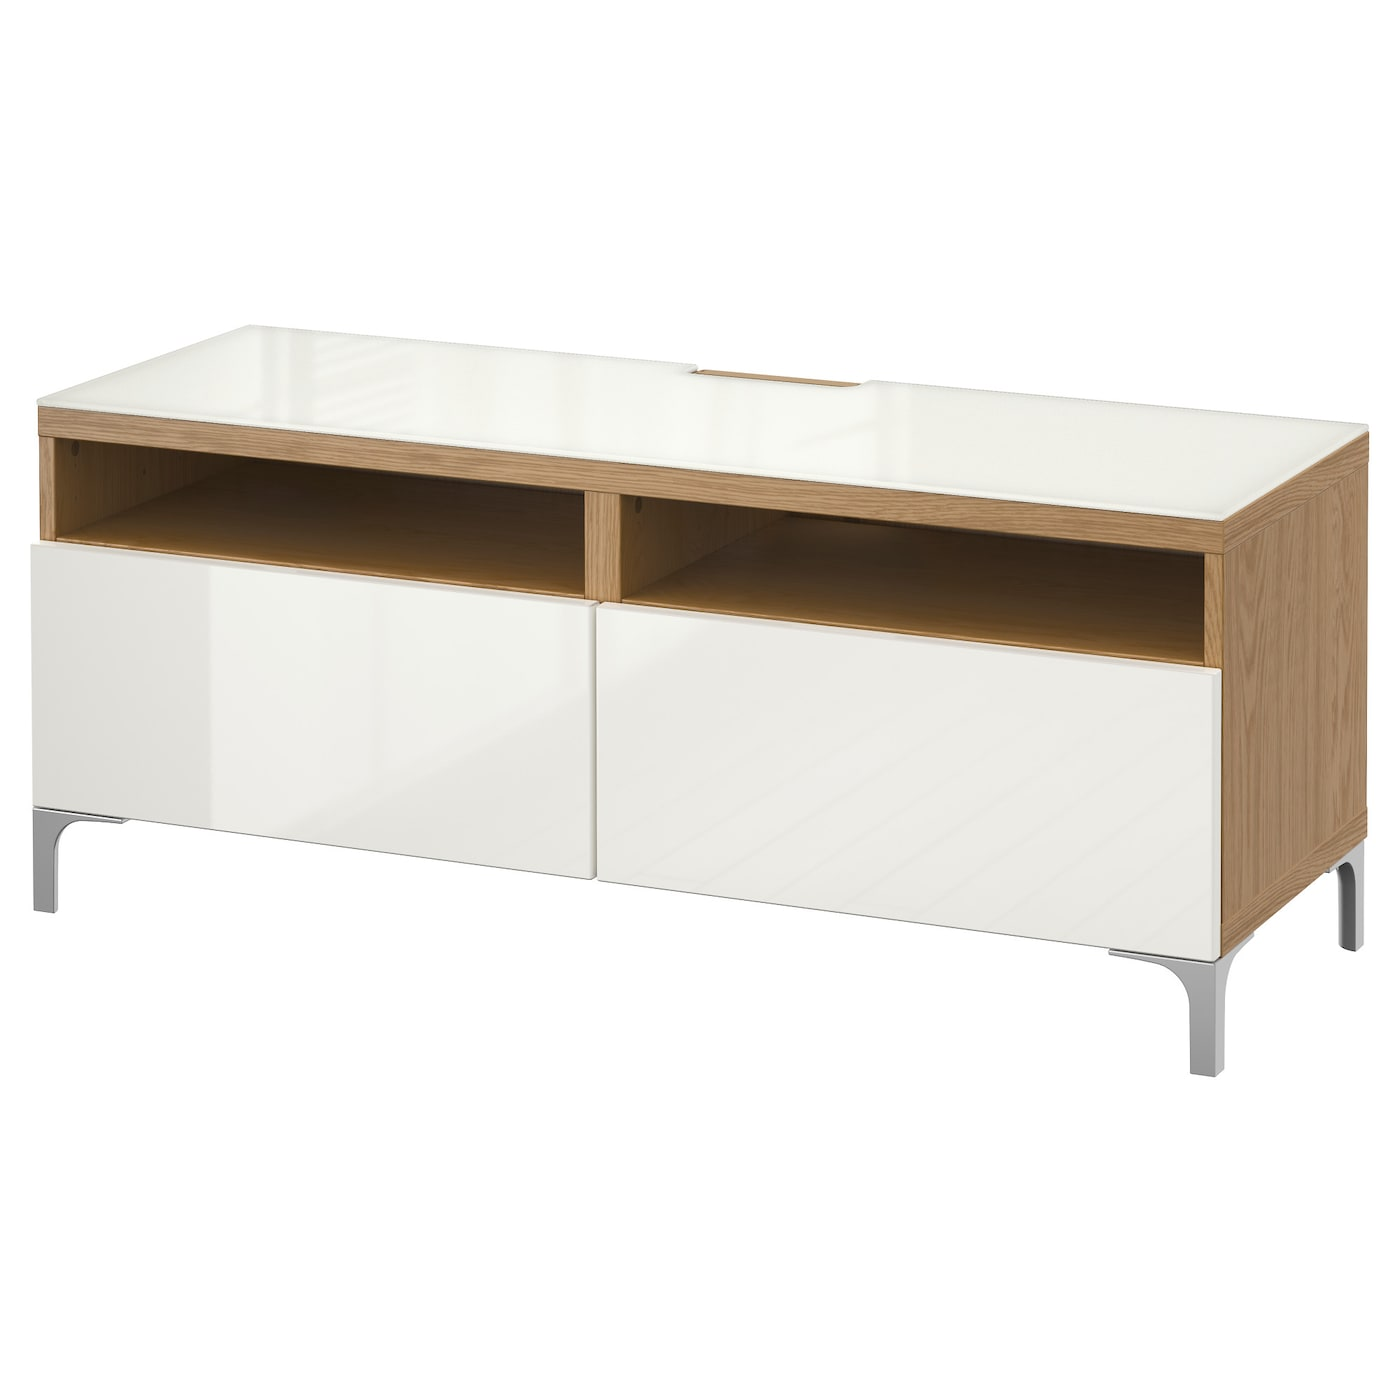 Best Tv Bench With Drawers Oak Effect Selsviken High Gloss White 120x40x48 Cm Ikea